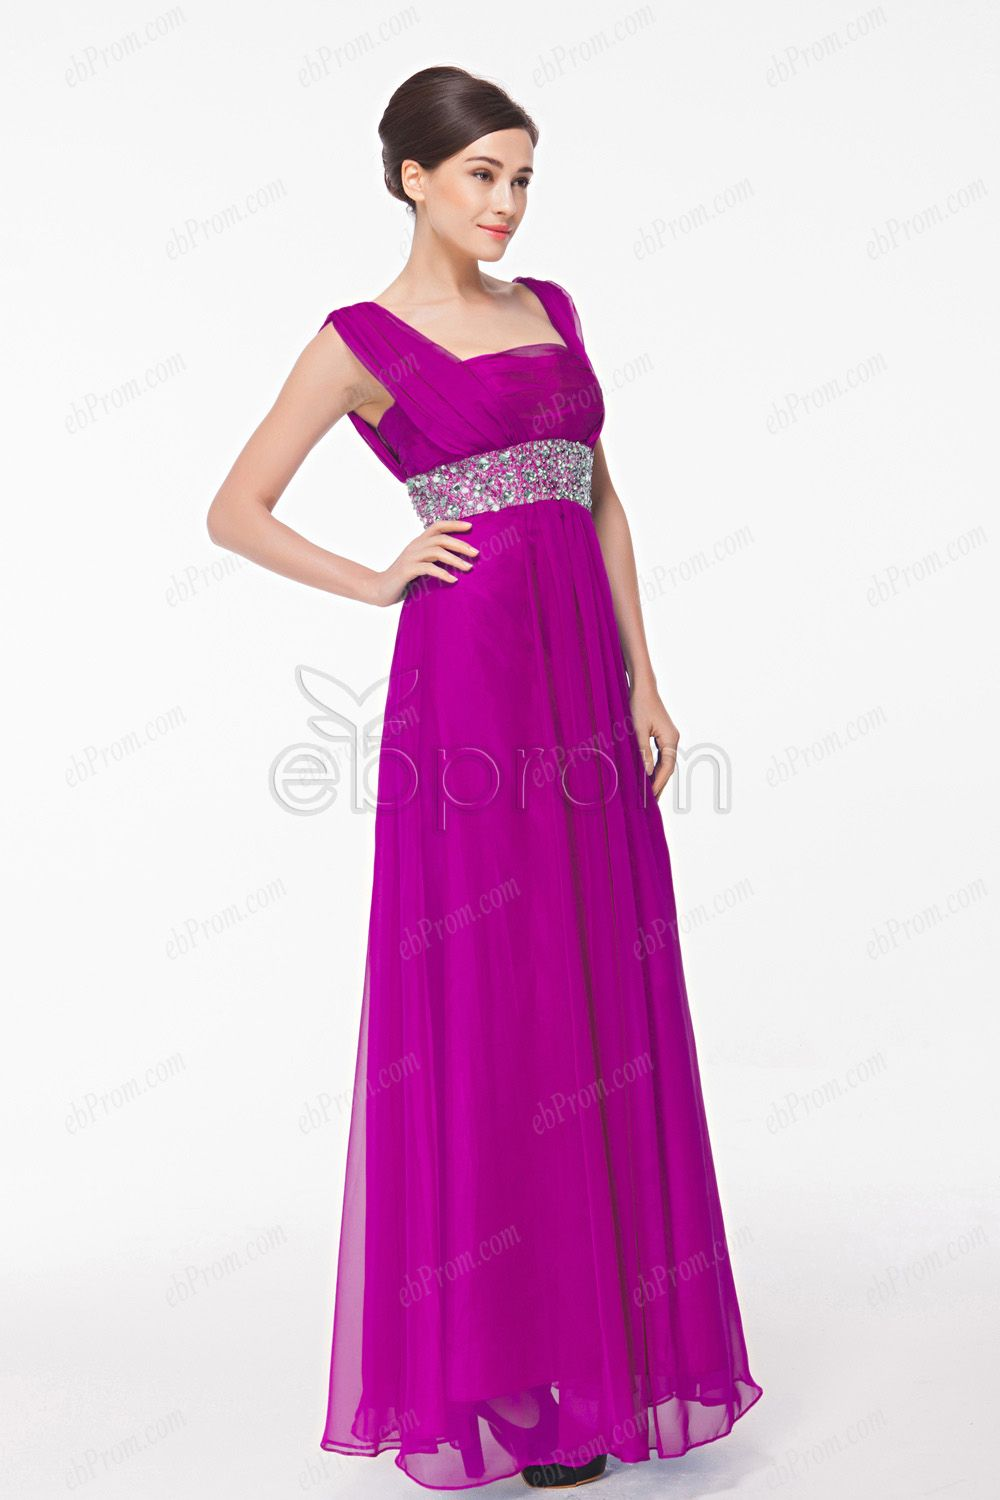 Ethnic Mother of the Bride Dress